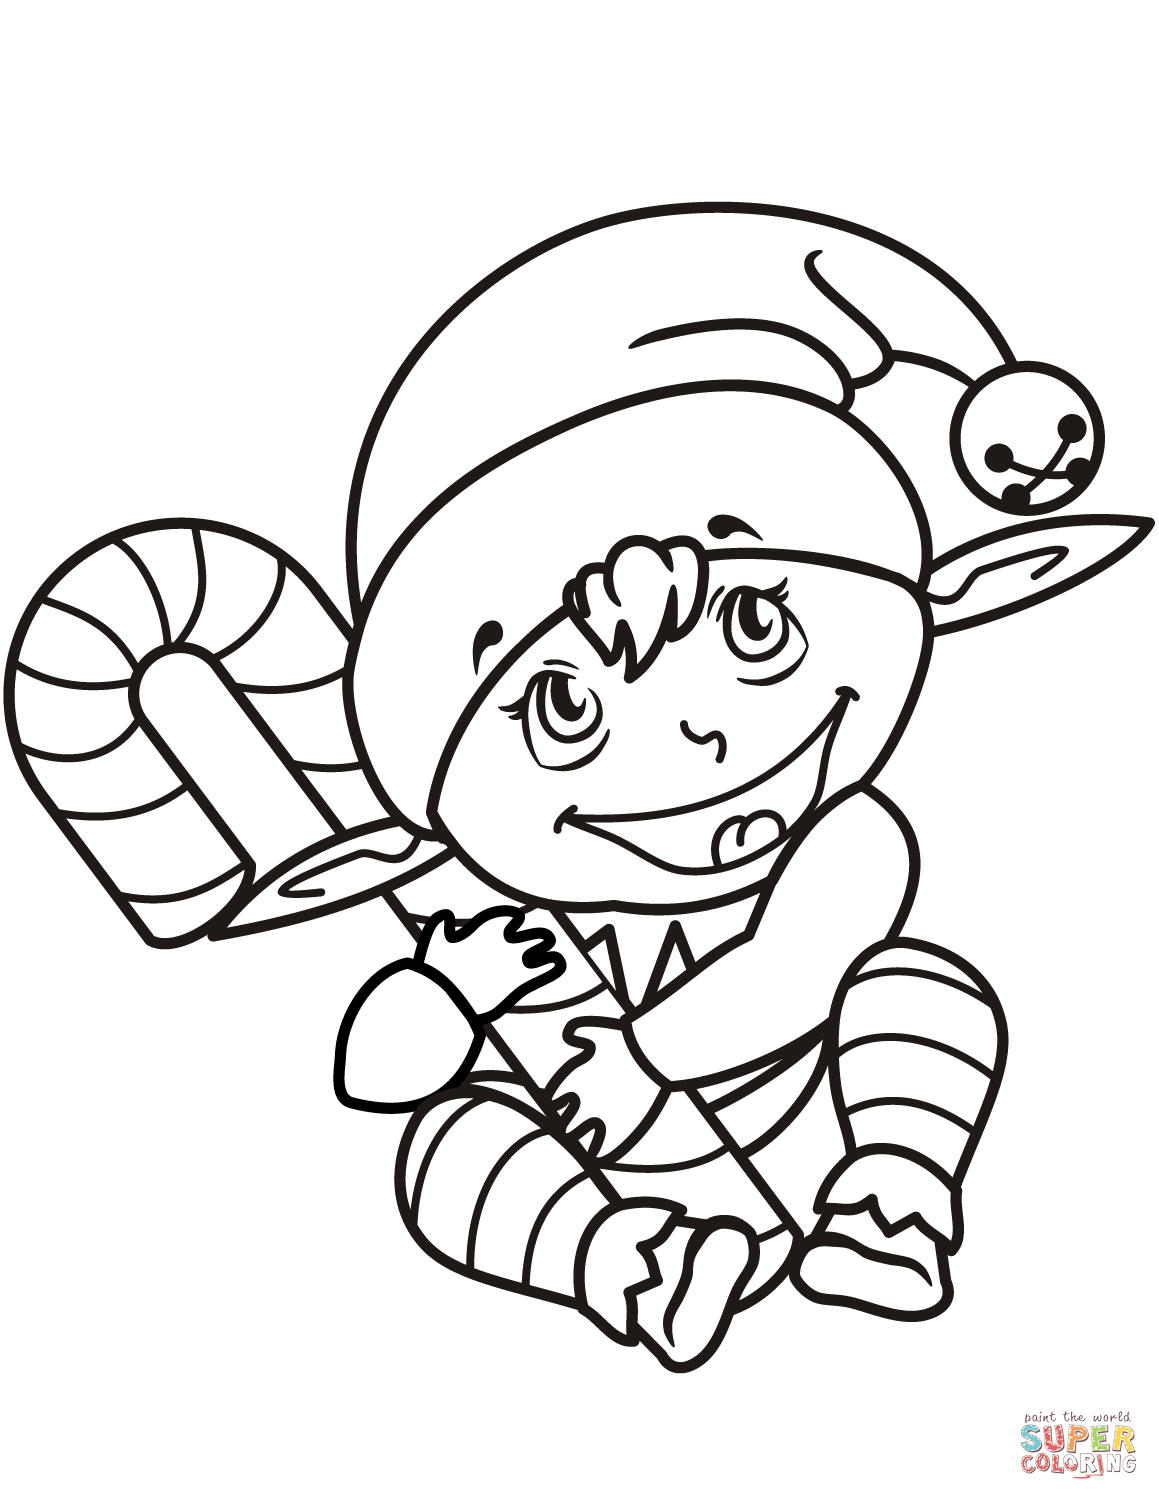 cute elf coloring pages cute elf coloring pages coloring home elf coloring cute pages